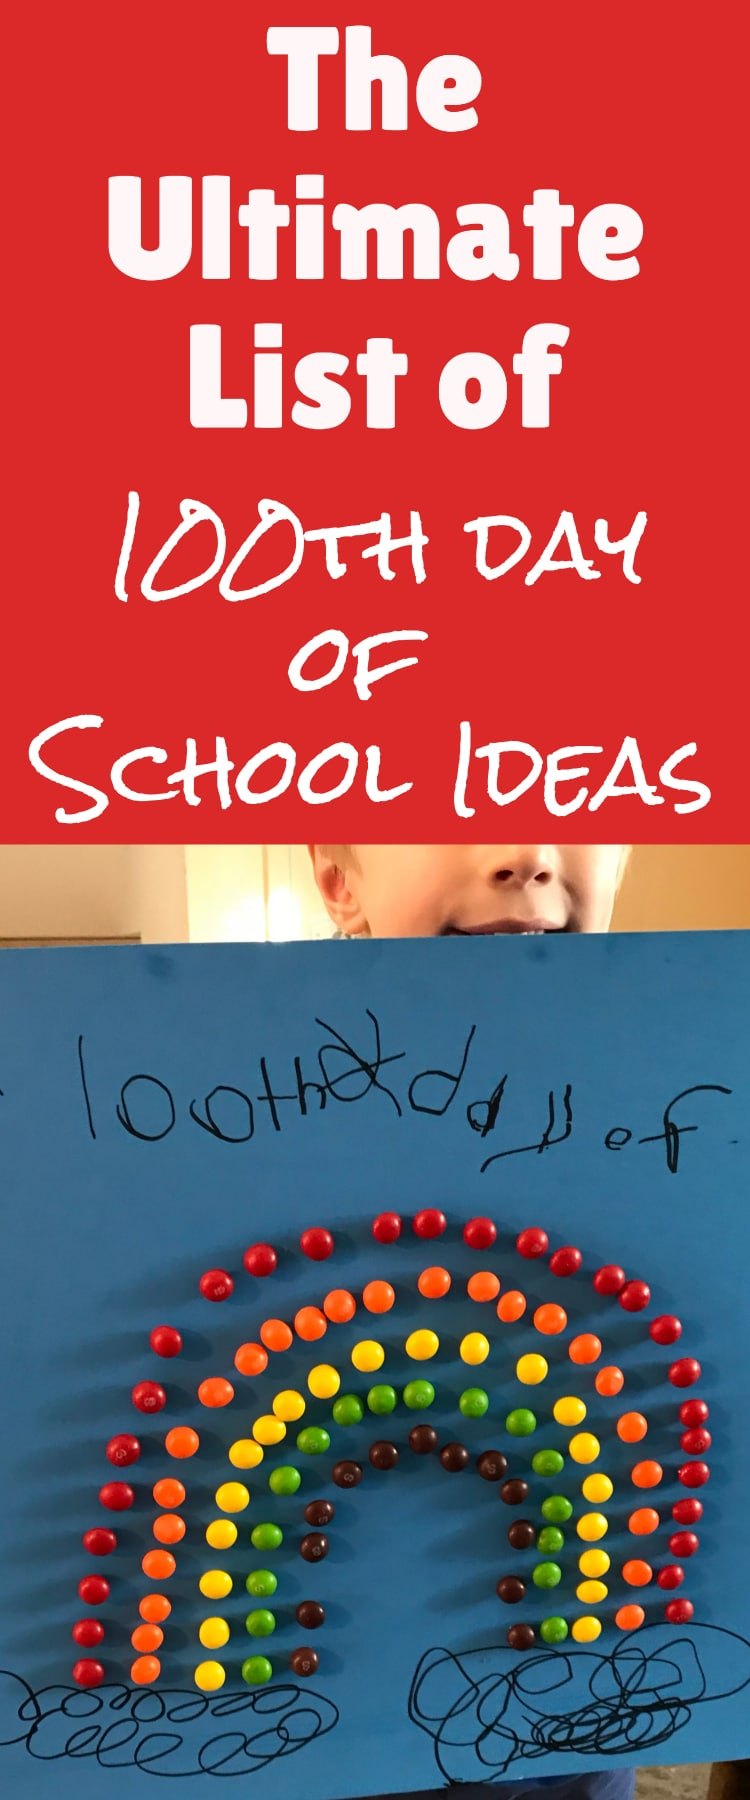 100 days of school / 100th day of school / 100th day of school ideas / kindergarten / kindergarten ideas / elementary school / class parent #100thdayofschool #100daysofschool #kindergarten